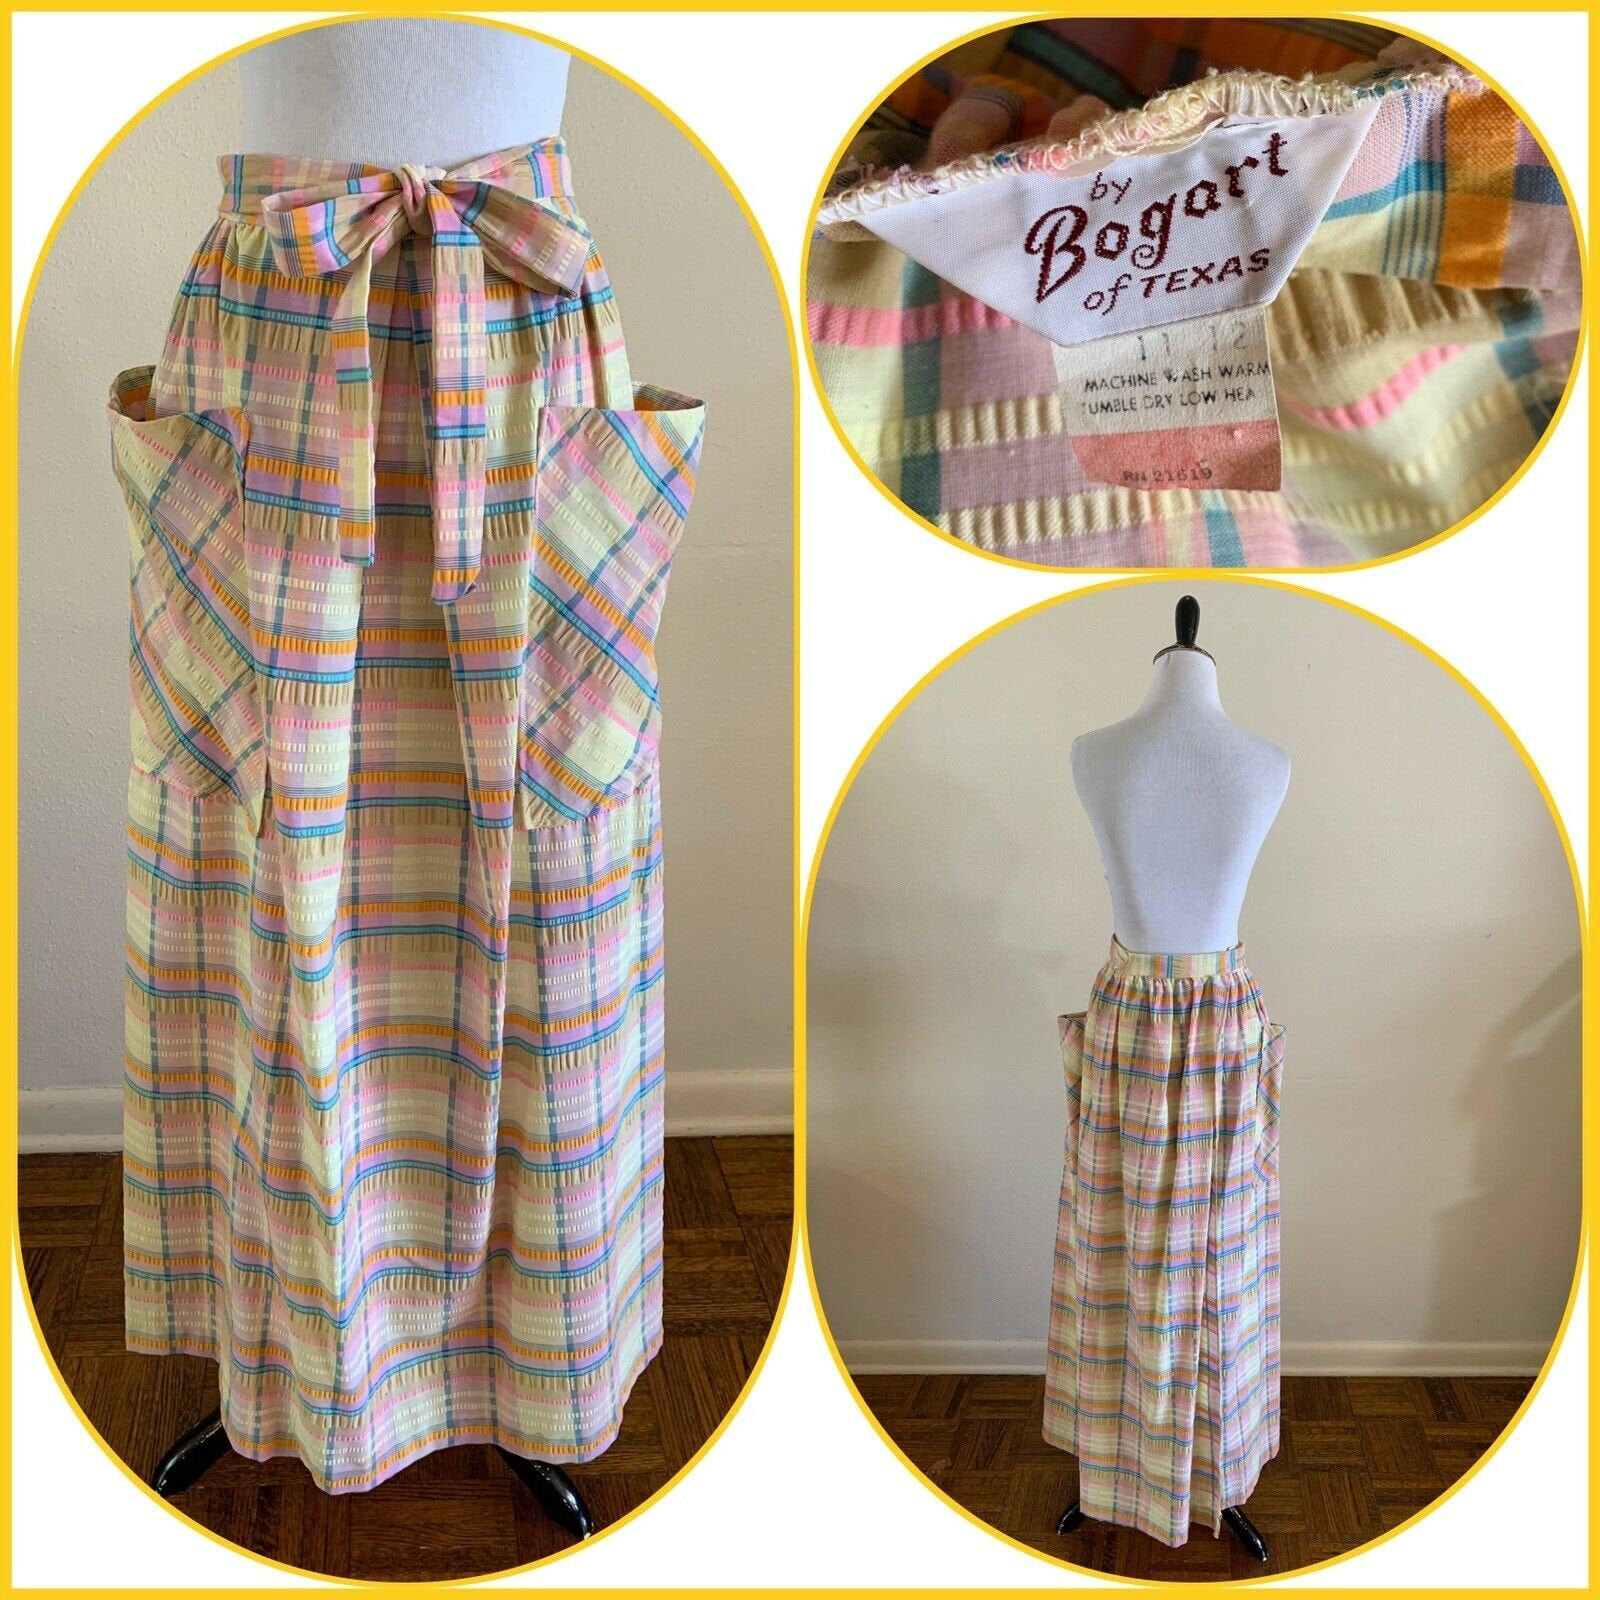 Vintage Aprons, Retro Aprons, Old Fashioned Aprons & Patterns 70S Bogart Of Texas Plaid Apron Maxi Wrap Skirt Hippie Country Folk Patio Peasant Chore Mod Boho Cowgirl Western Farm Rodeo Summer $125.00 AT vintagedancer.com